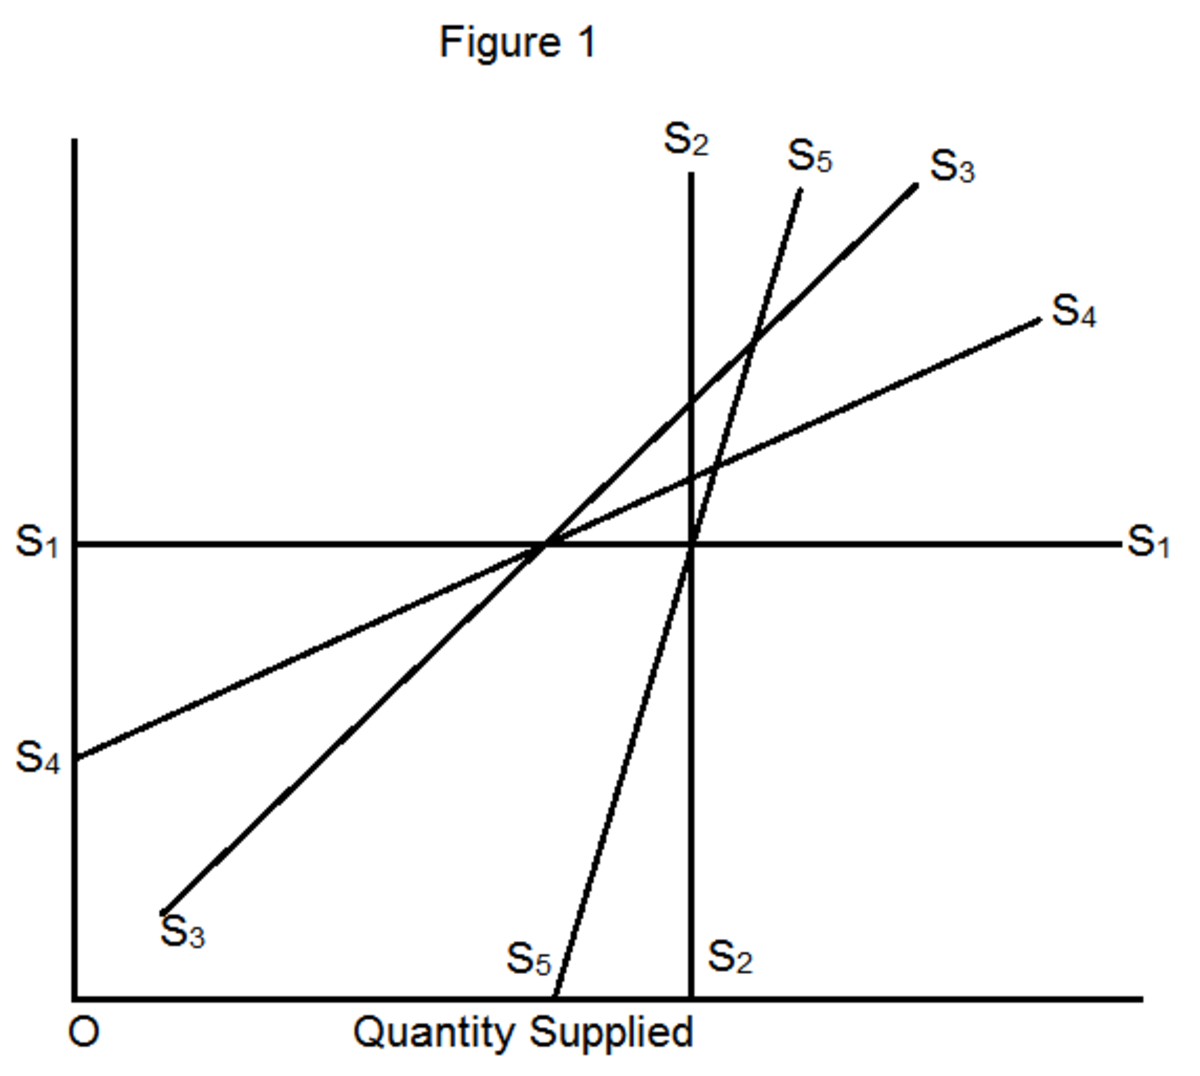 Elasticity Of Supply Meaning Types Measurement Determinants